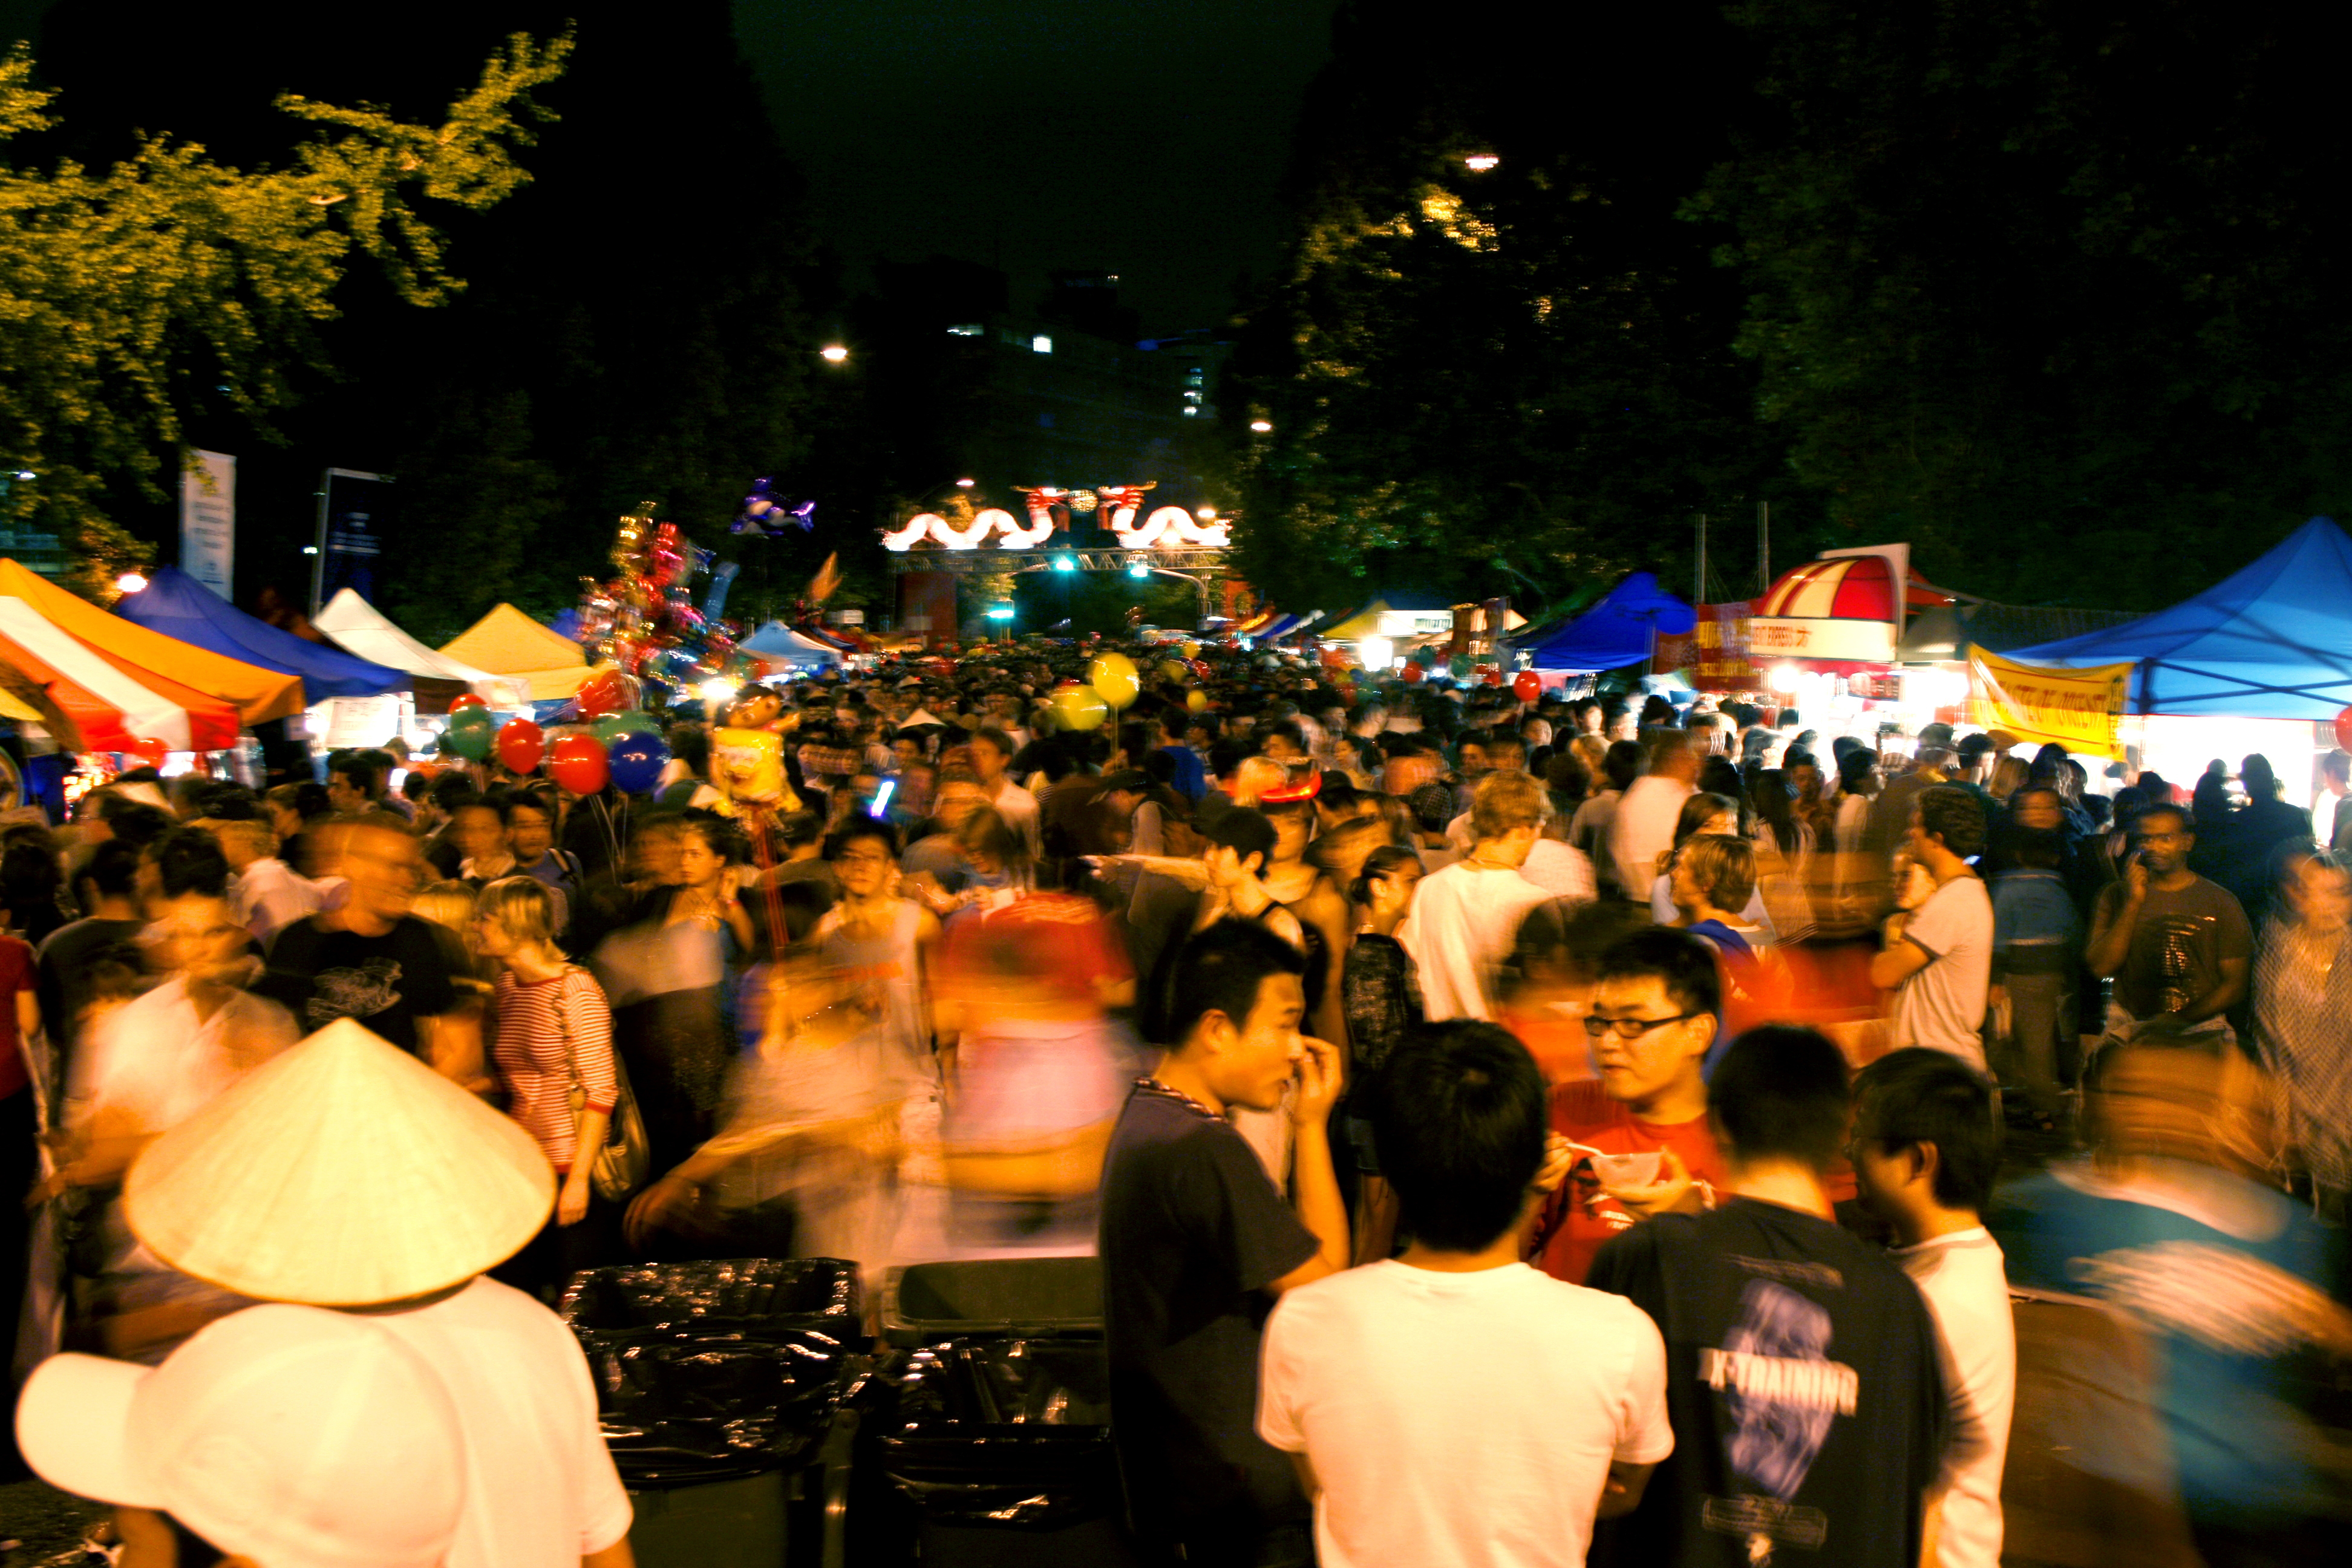 crowd of people at night market